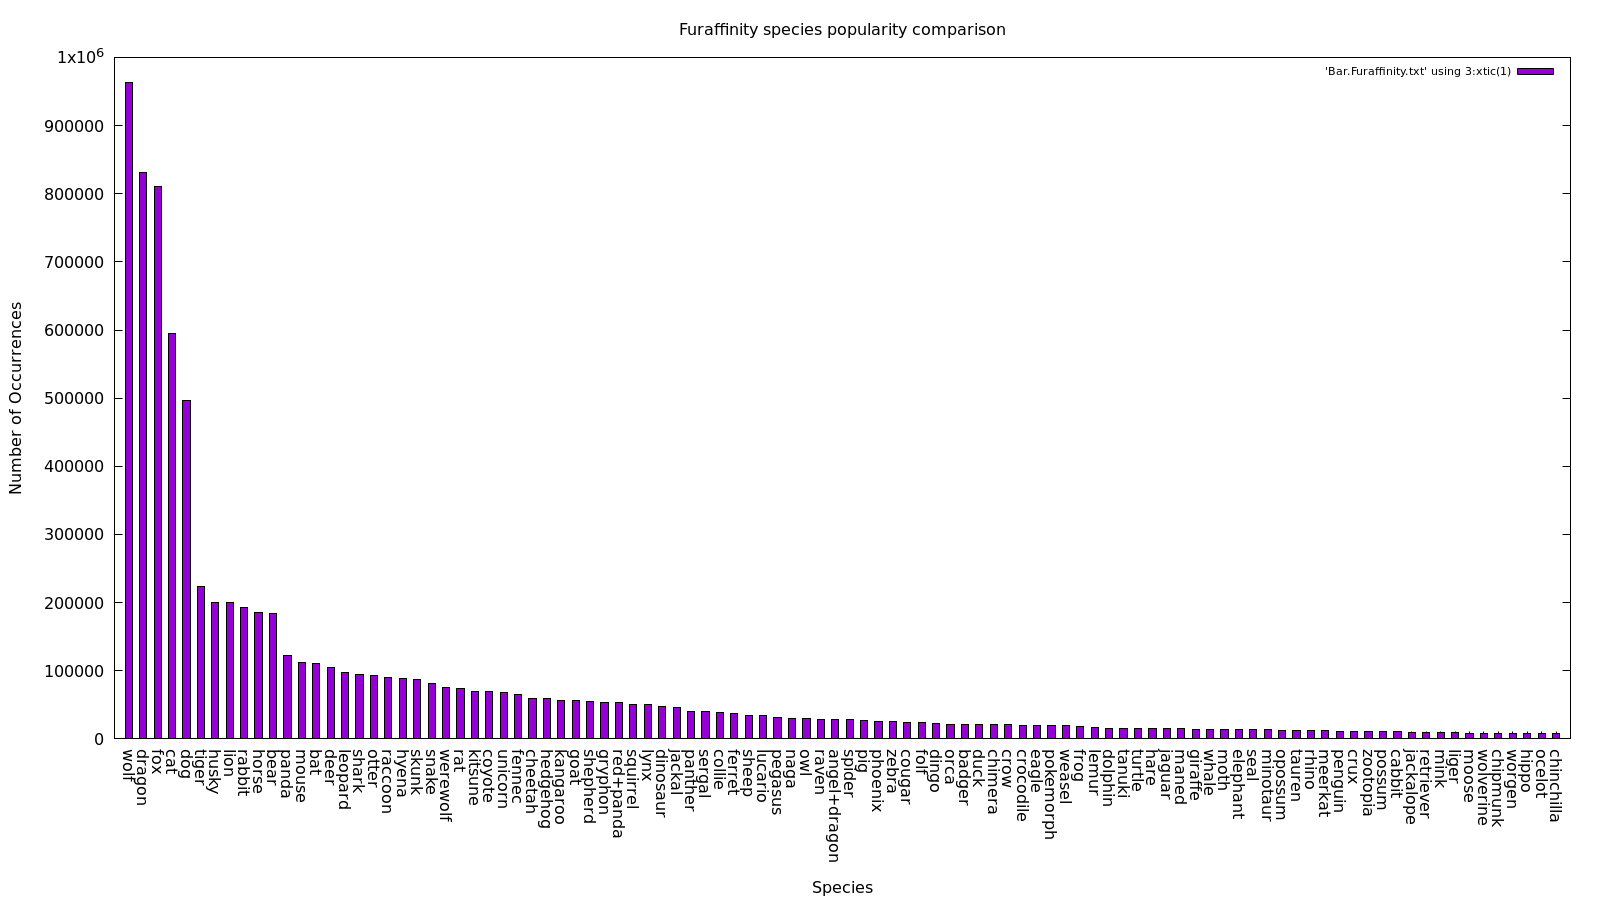 Graph of the top 100 species for Furaffinity